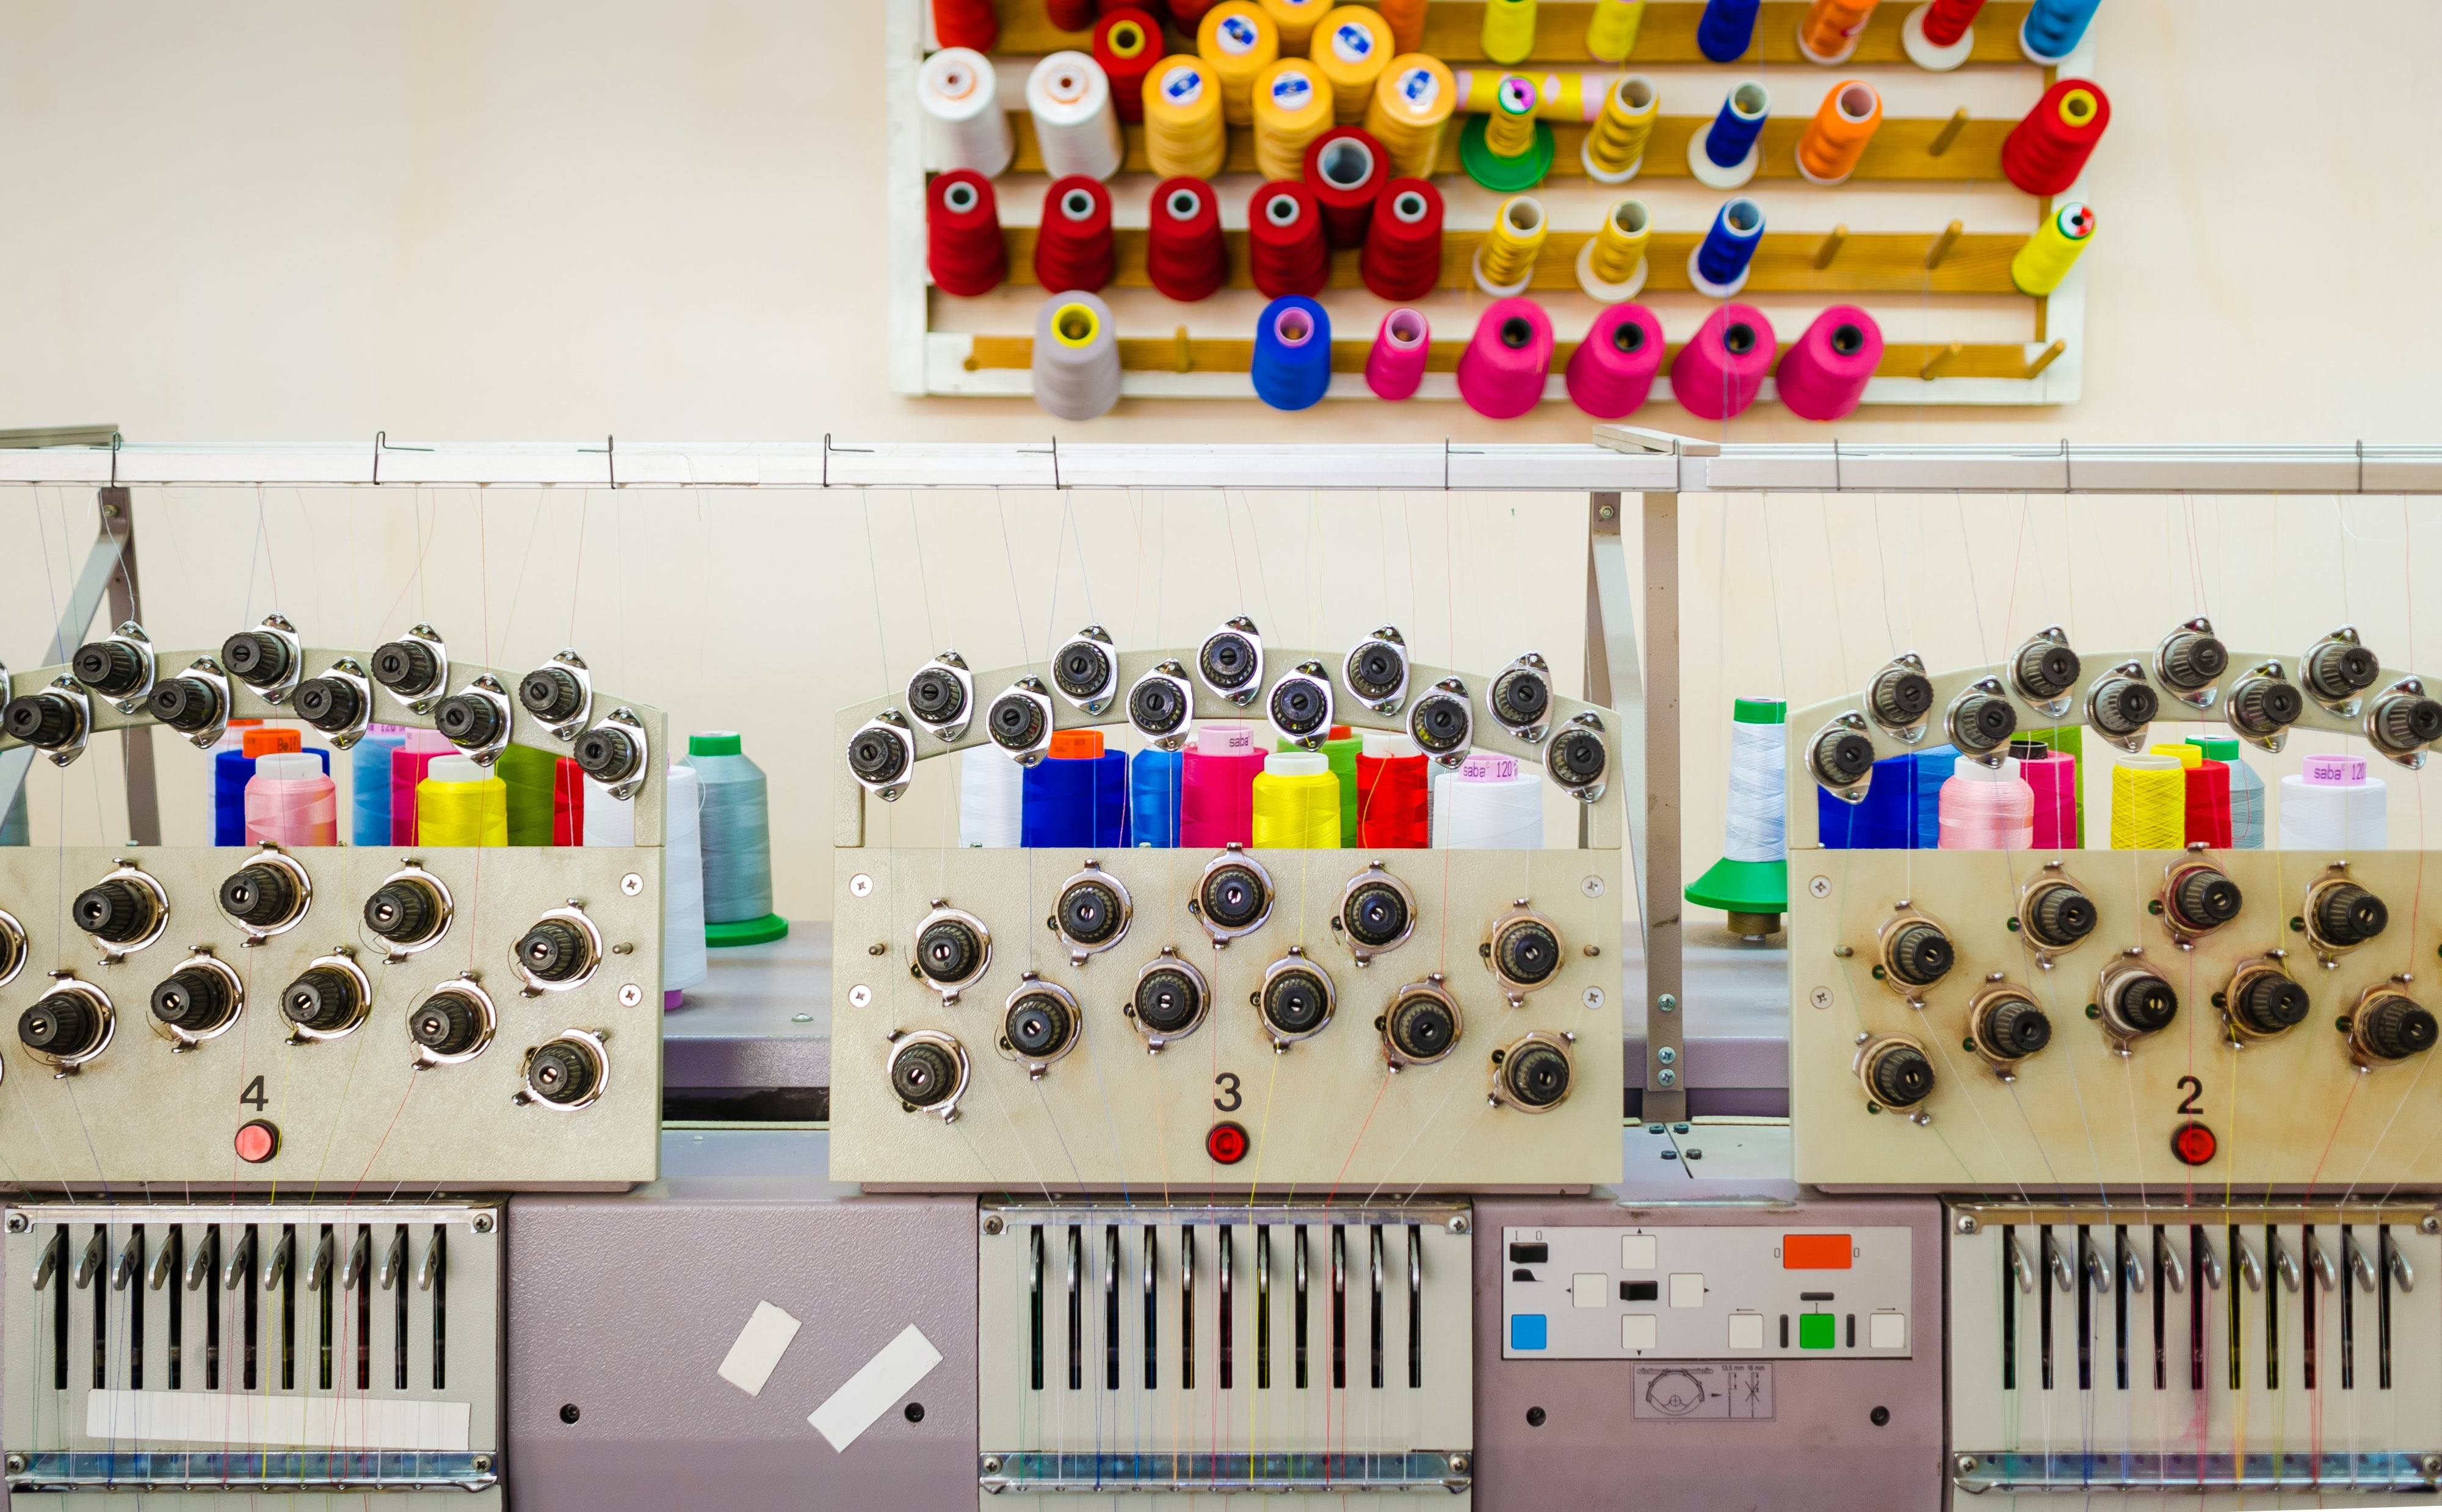 Embroidery equipment at a sewing factory | Source: Shutterstock